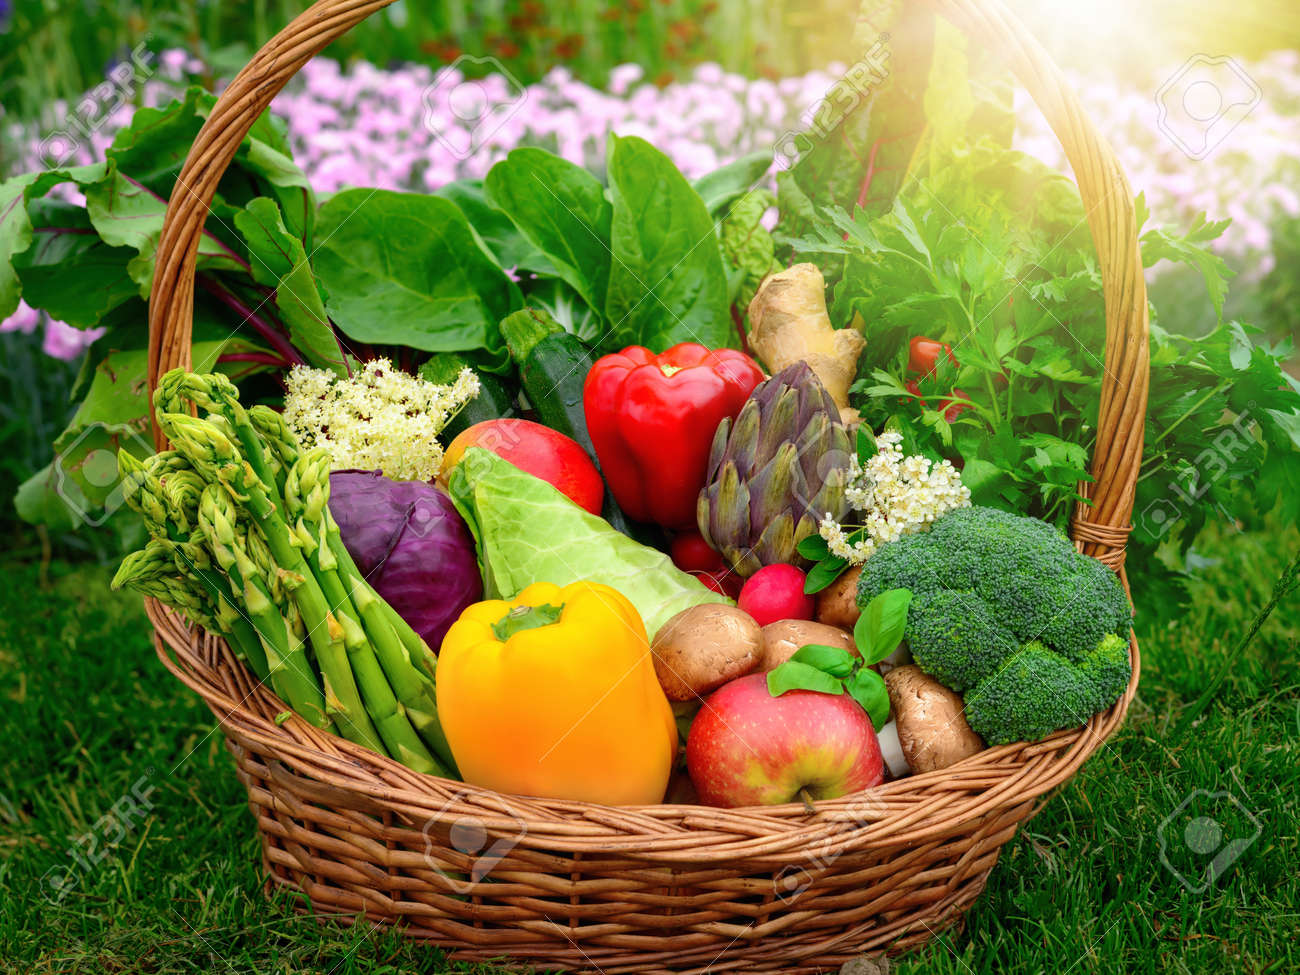 Colorful and appetizing vegetables and fruits in a nice old-fashioned basket in the garden - 148396554